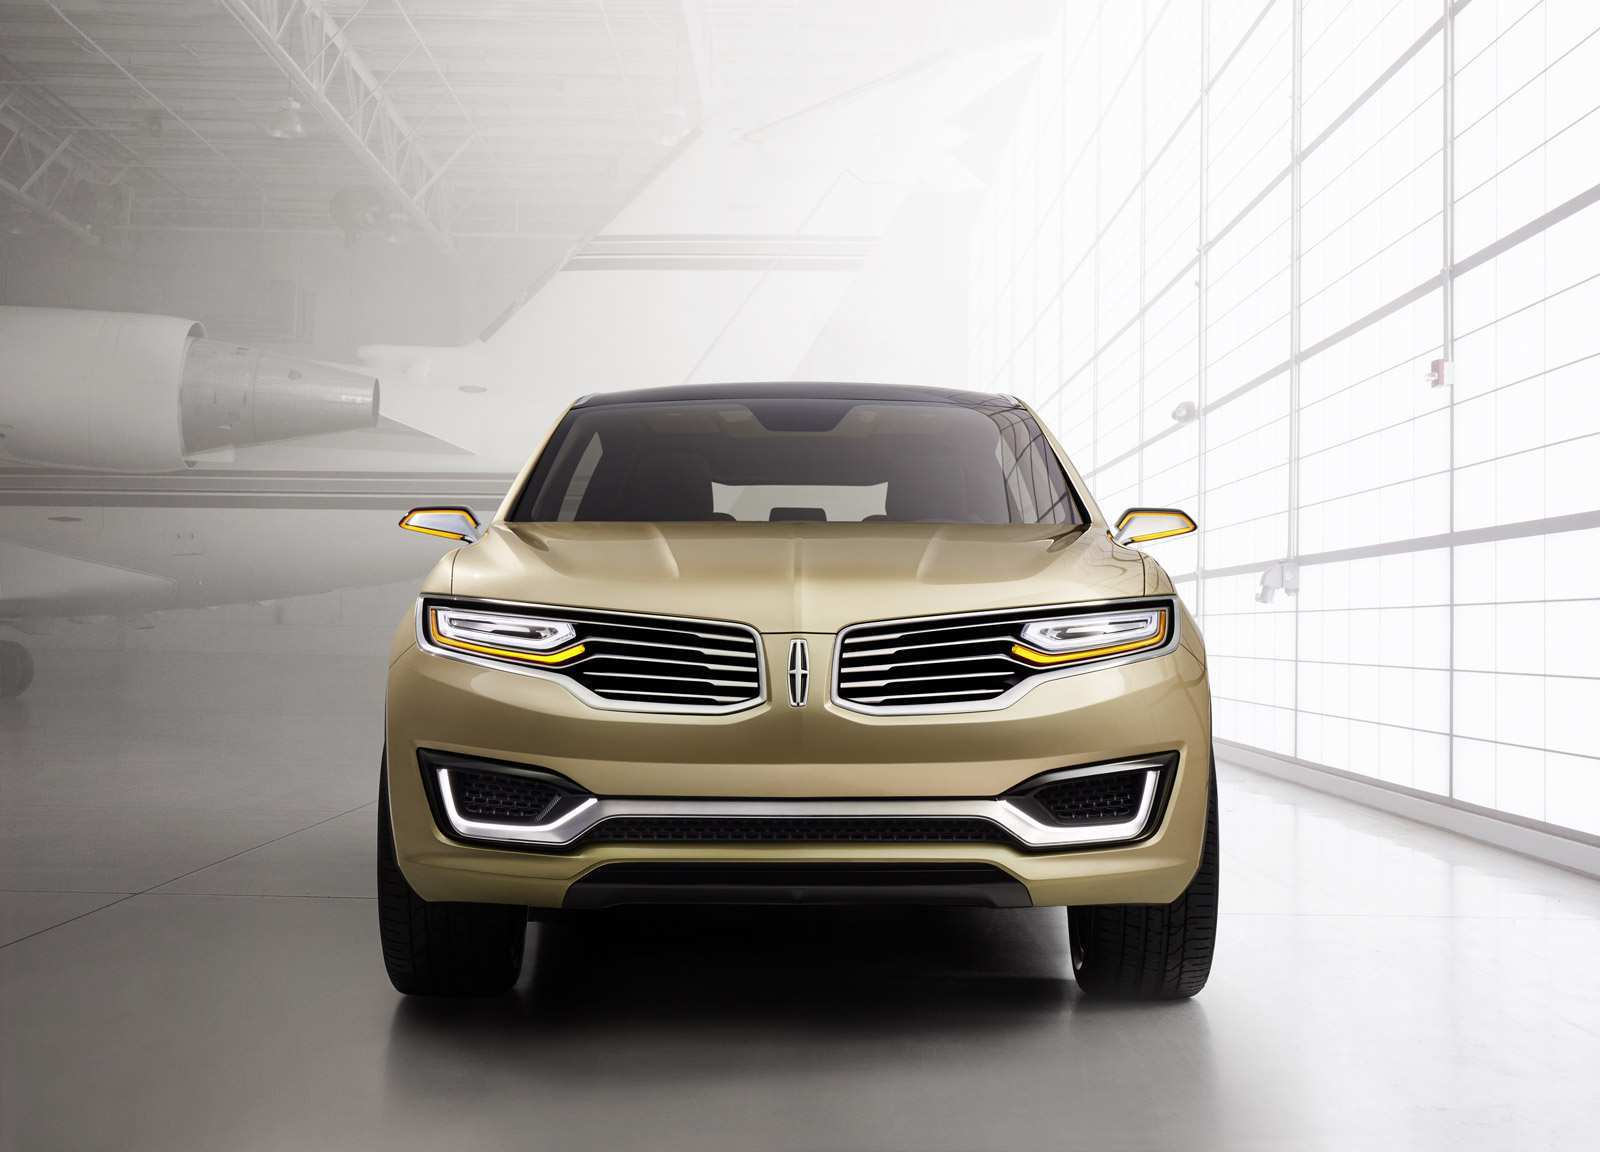 2020 Lincoln Mkx At Beijing Motor Show Review